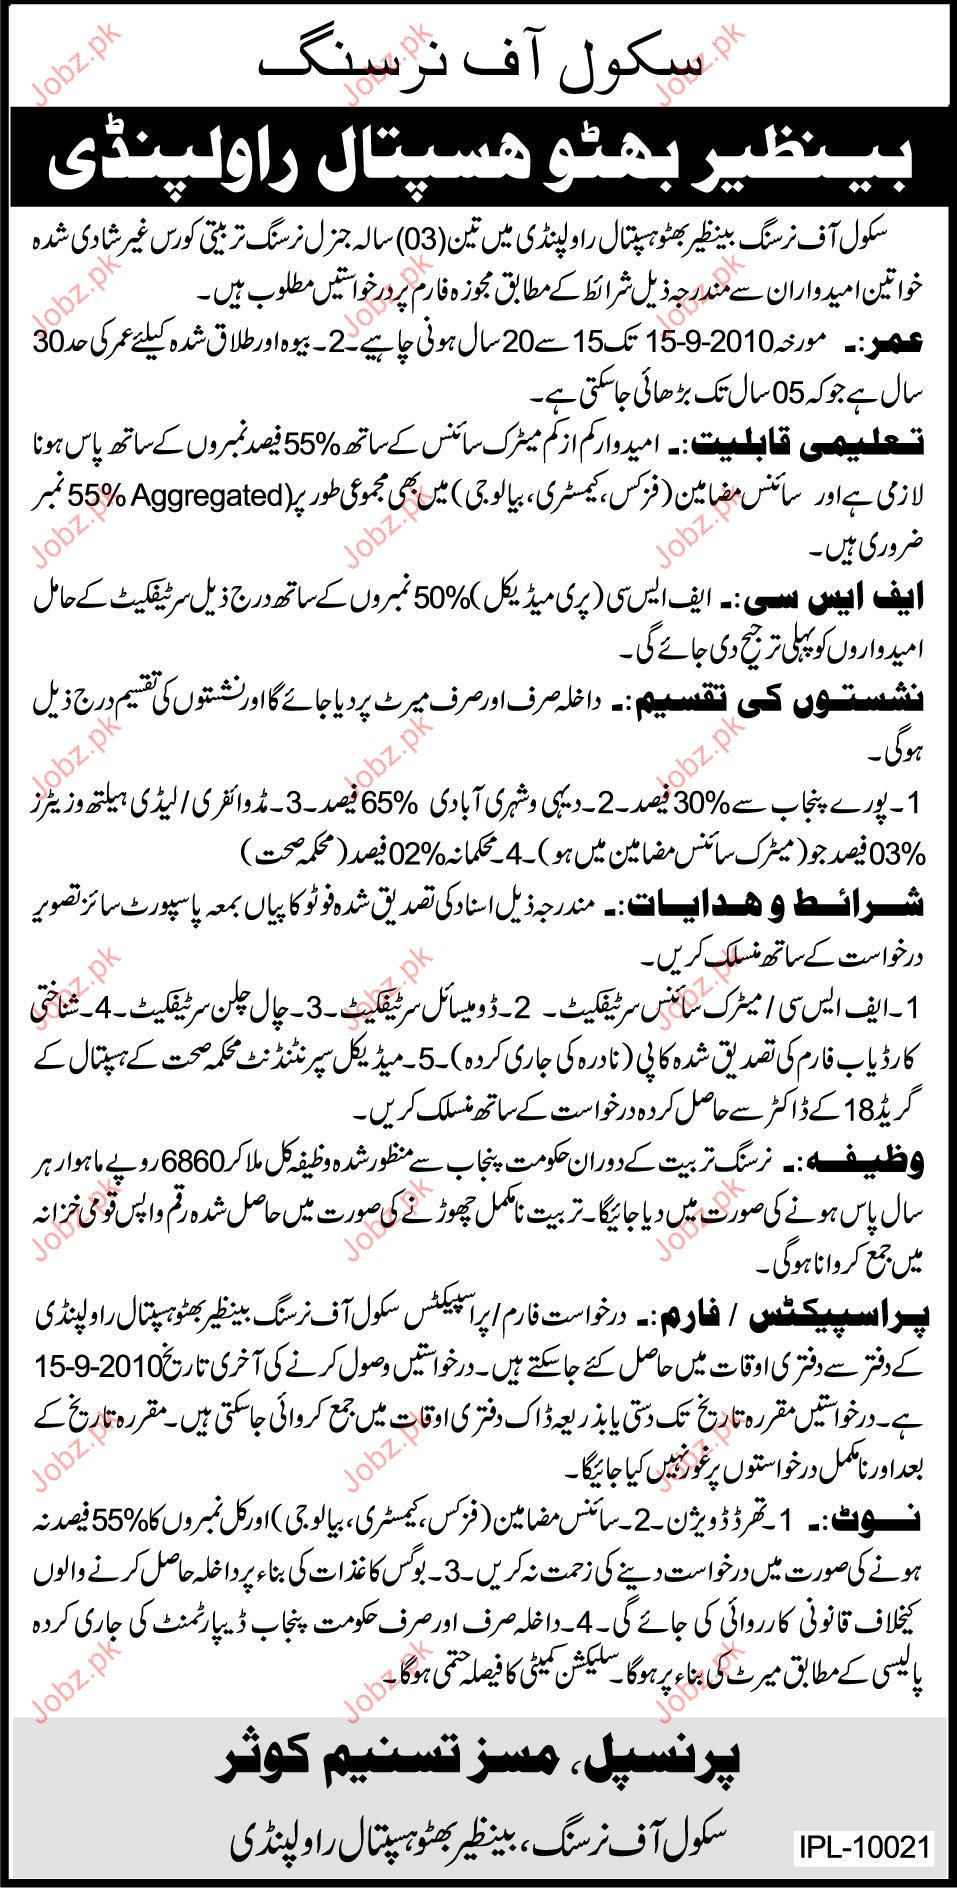 Benazir Bhutto Hospital Rawalpindi Admission Open 2019 Government admissions Course Other